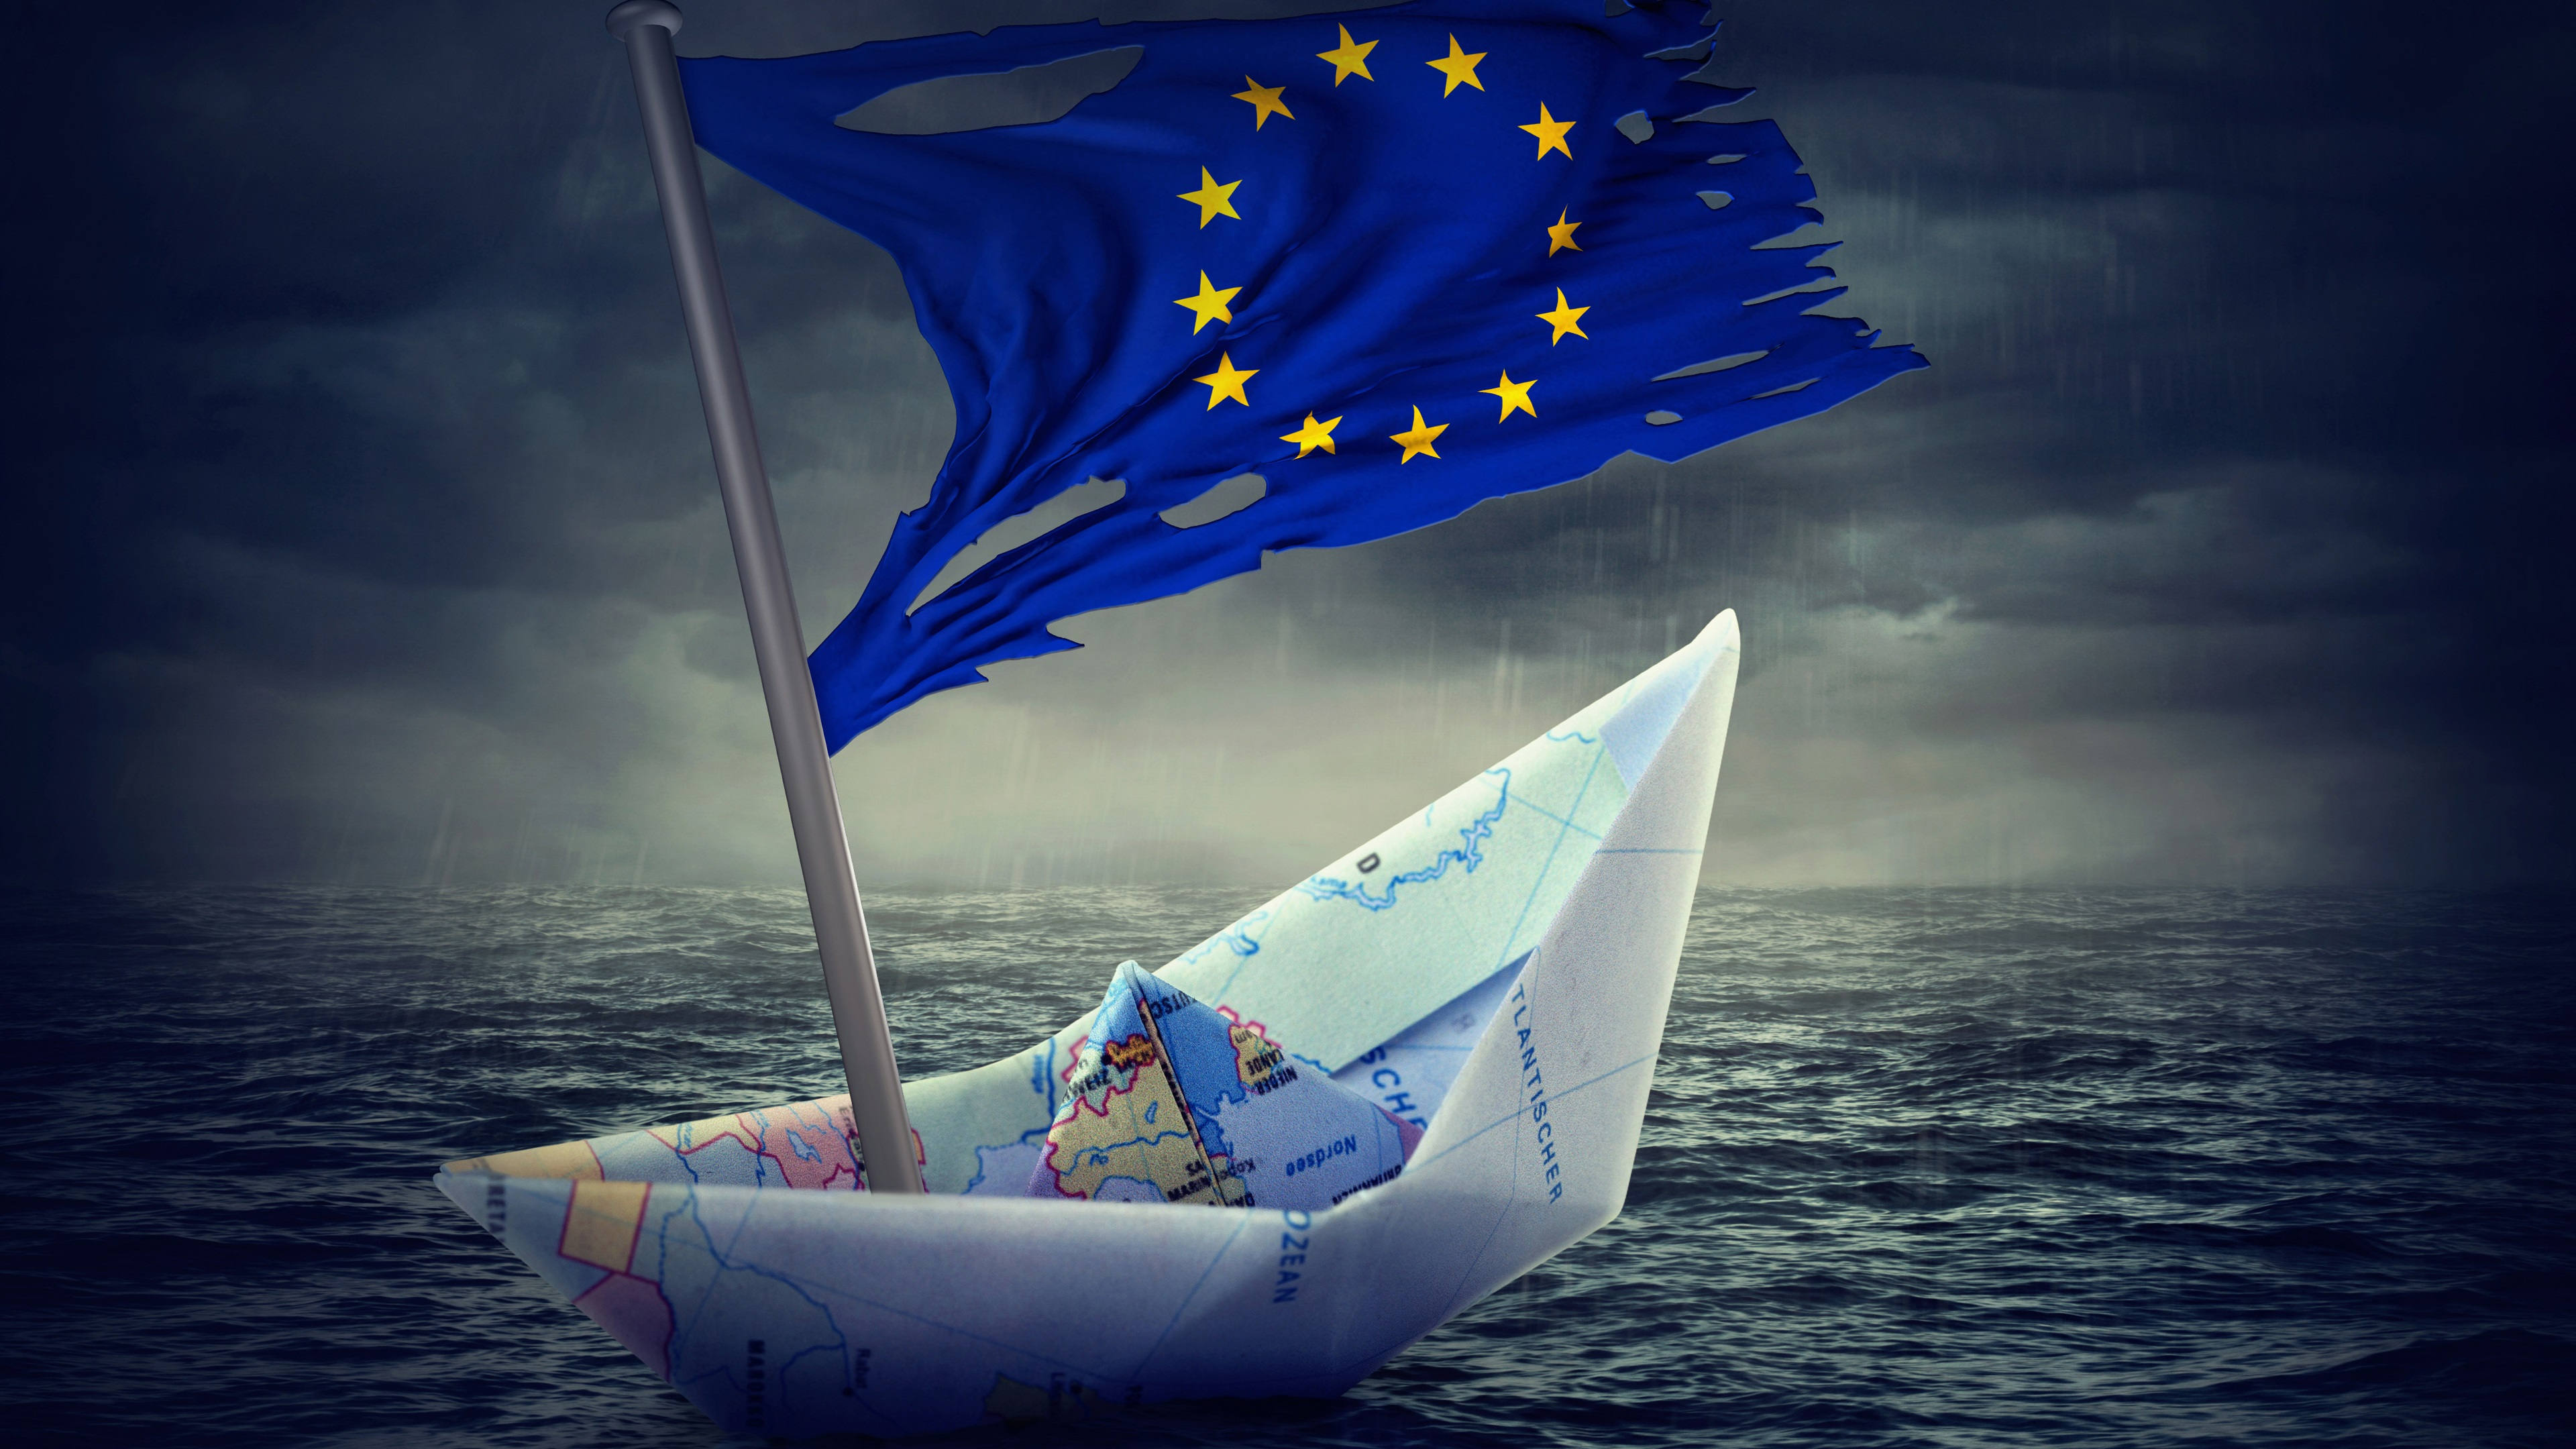 Wallpaper Paper boat Flag of Europe creative pictures 3840x2160 3840x2160